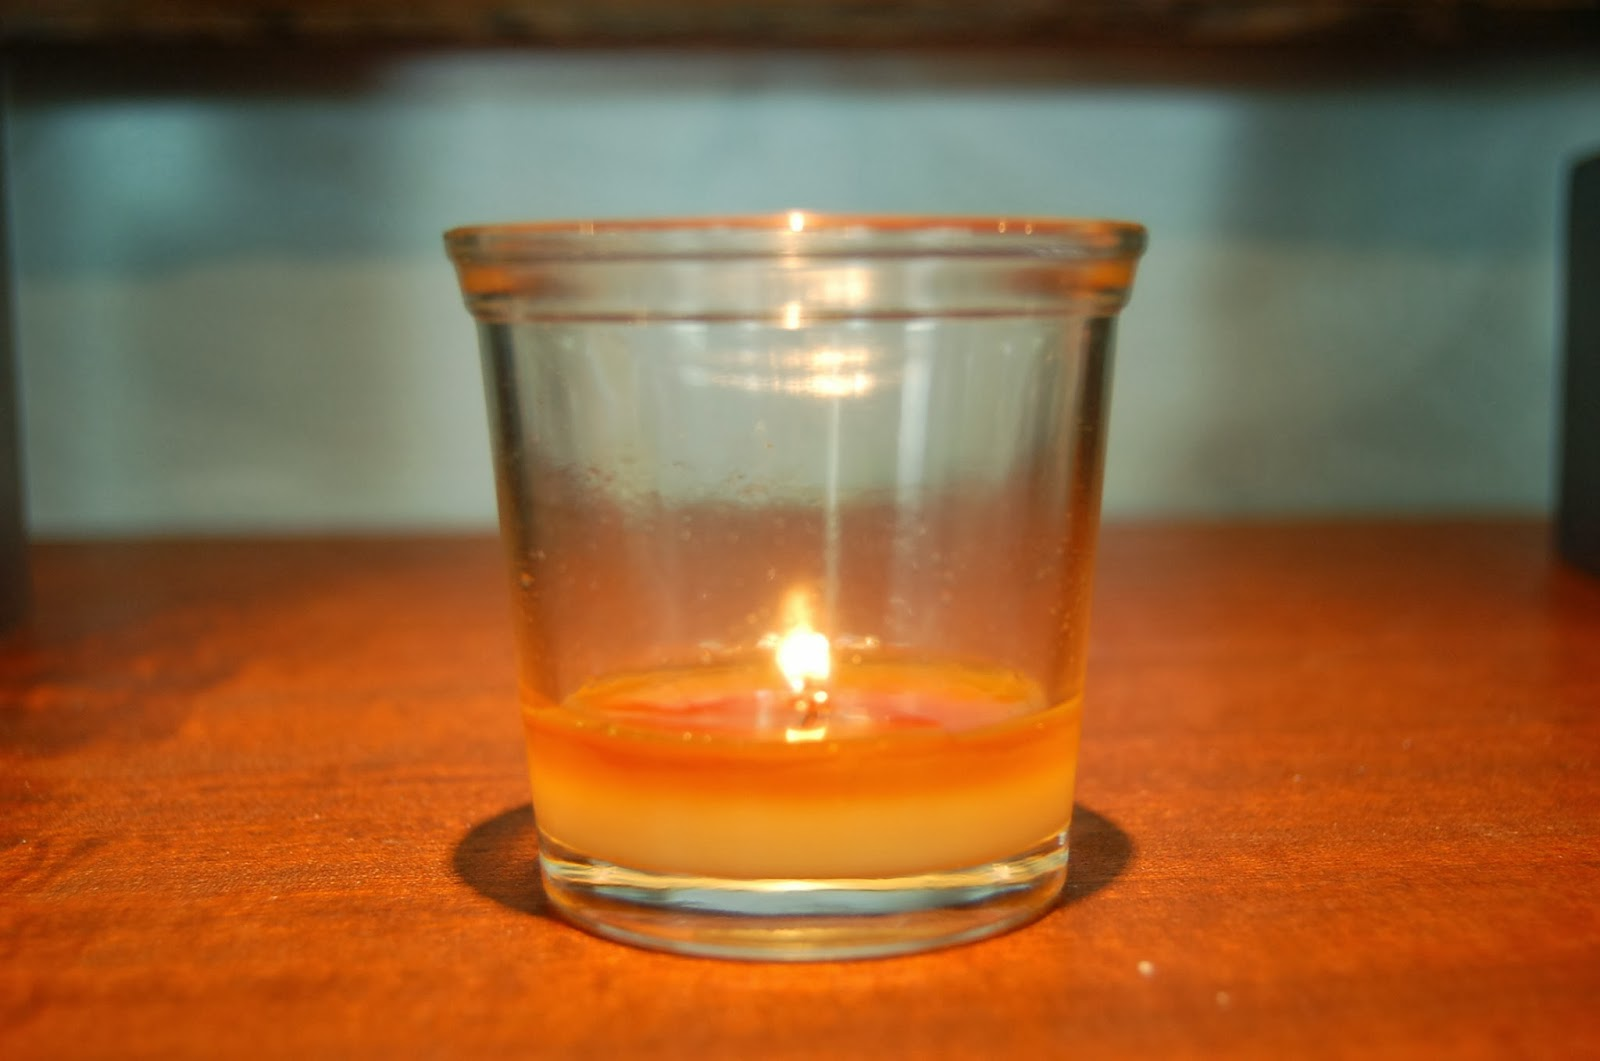 How To Prevent Candle Tunneling